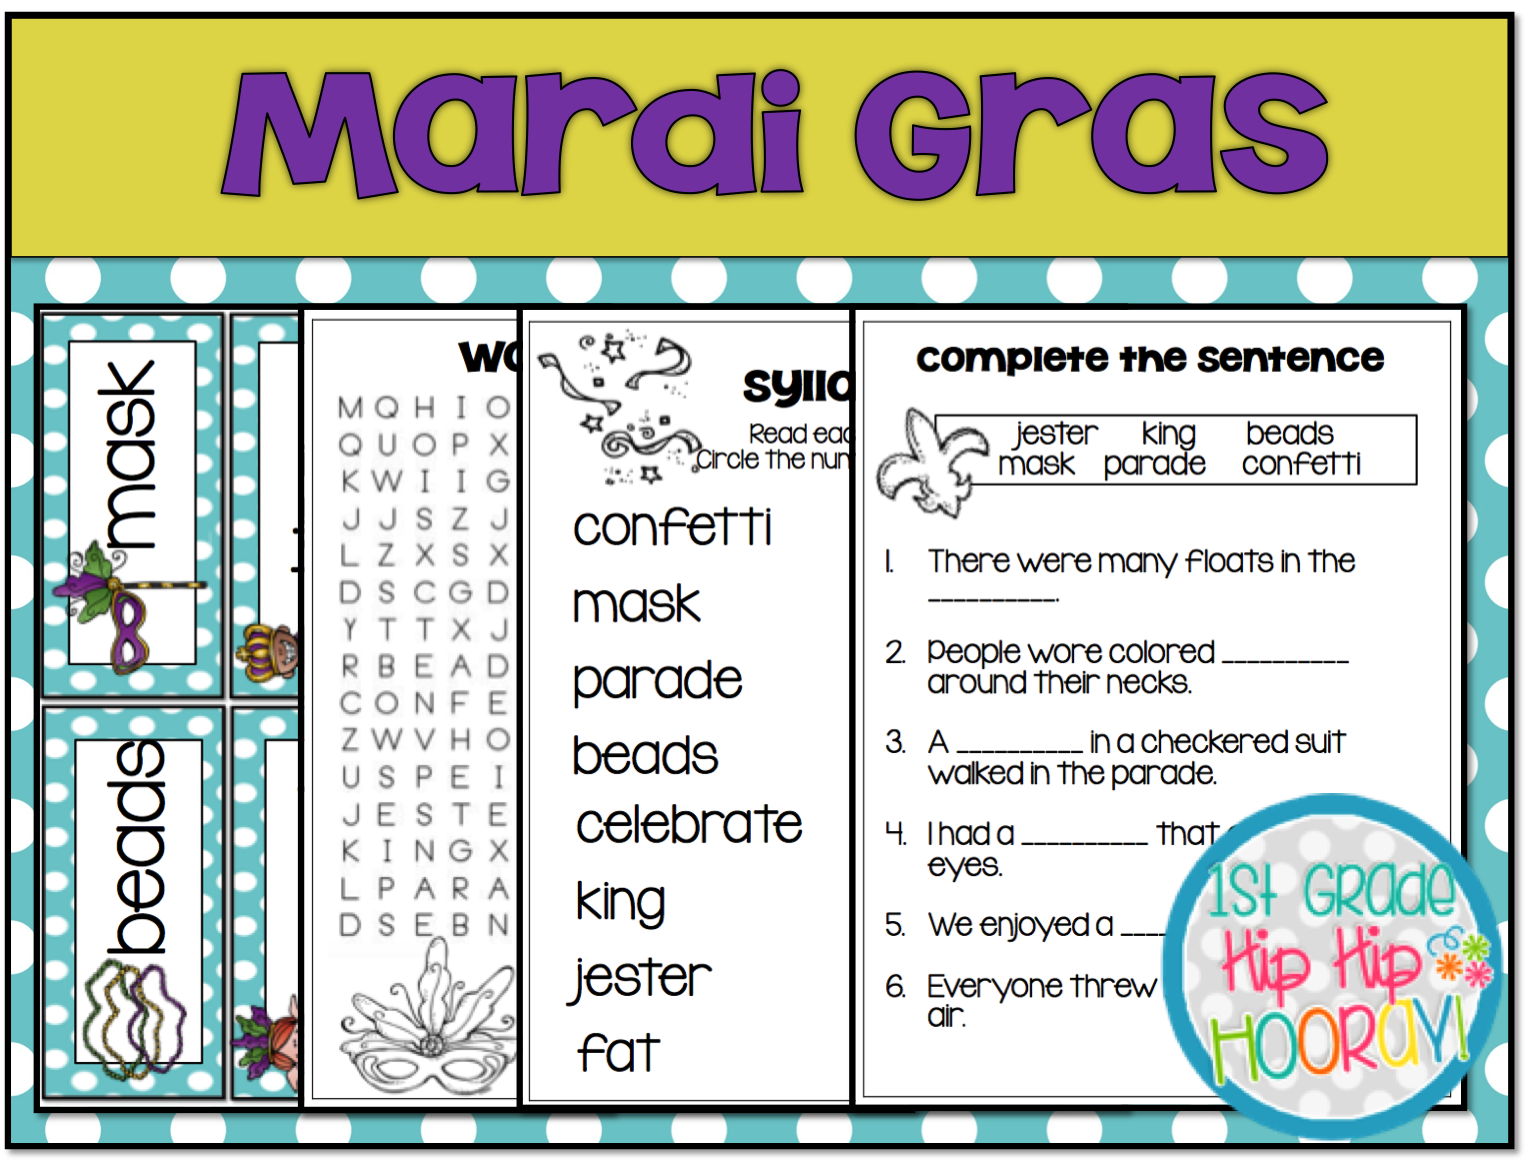 worksheet Mardi Gras Worksheets 1st grade hip hooray mardi gras celebration february 13th your class will enjoy celebrating gras